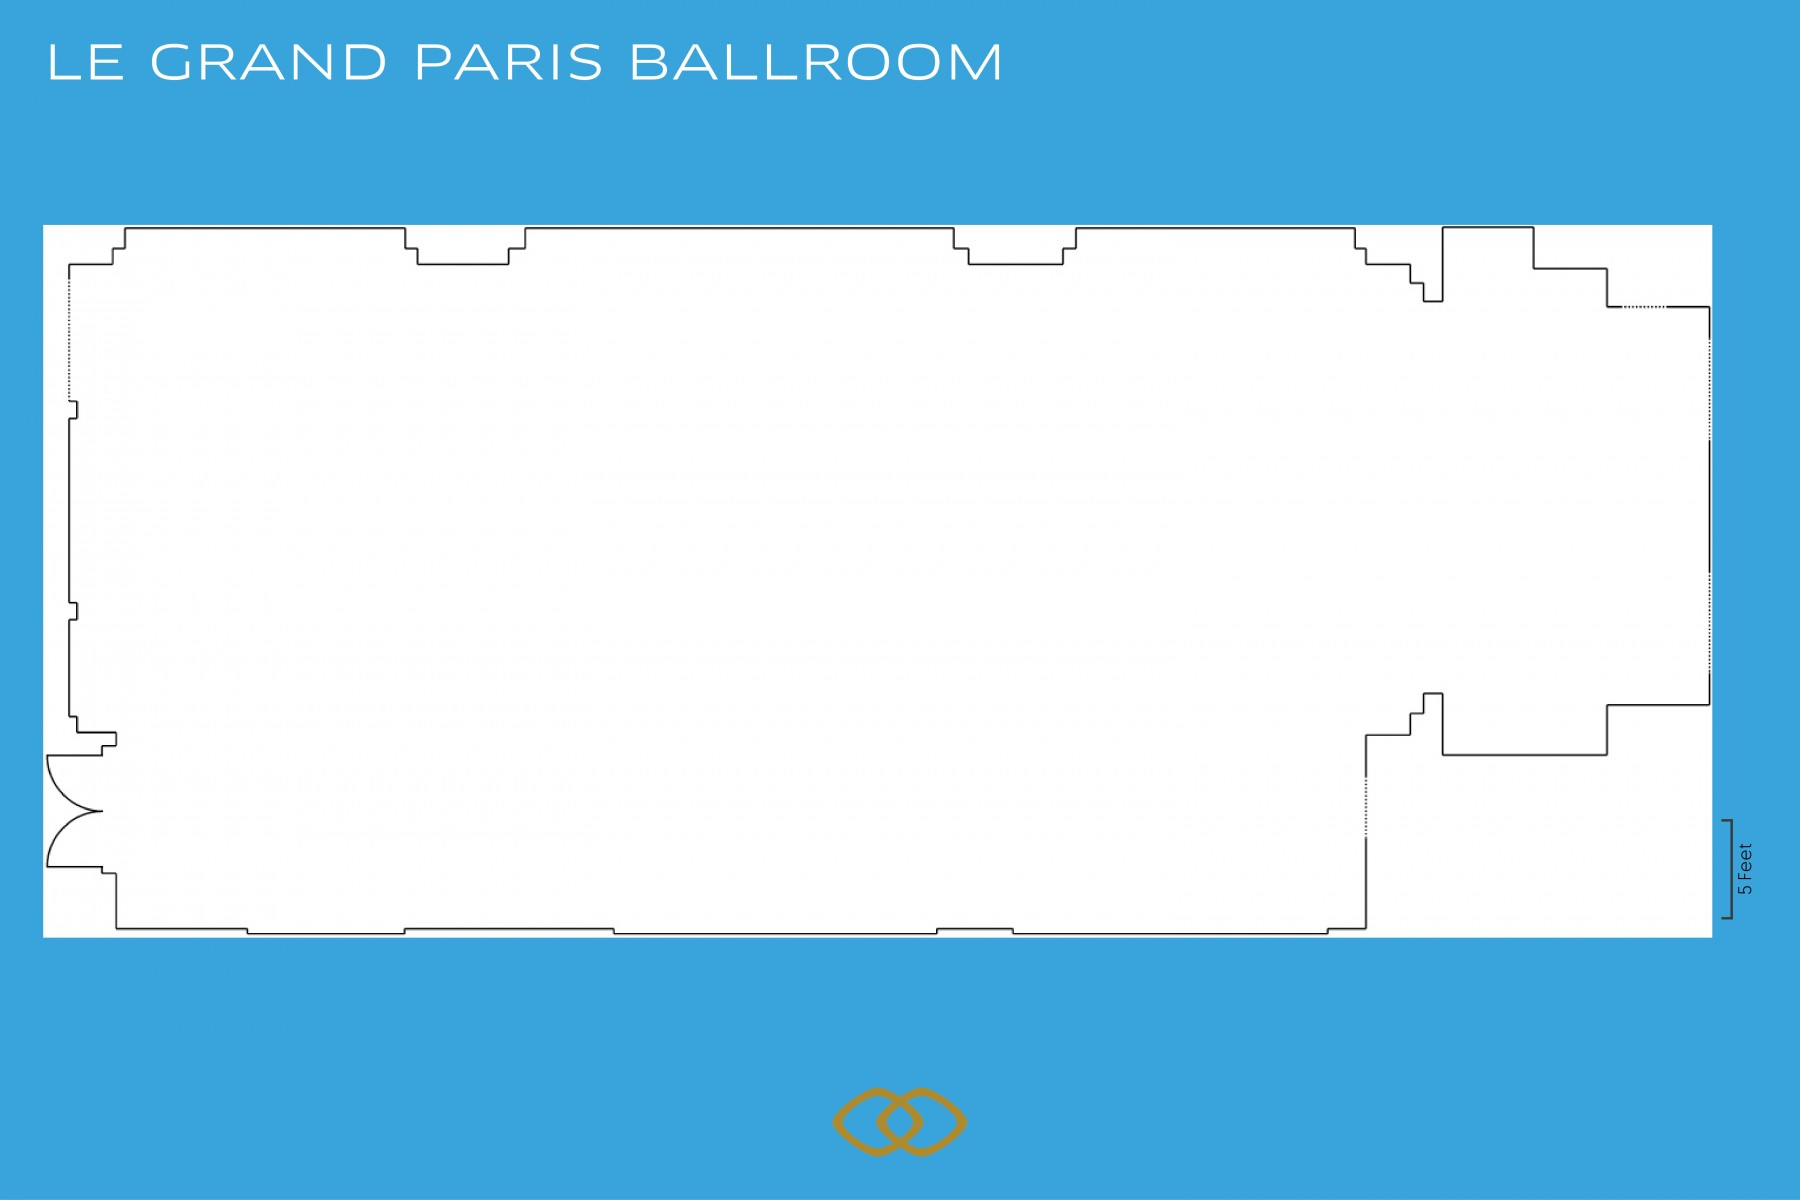 sny_meetings_parisballroom.jpg